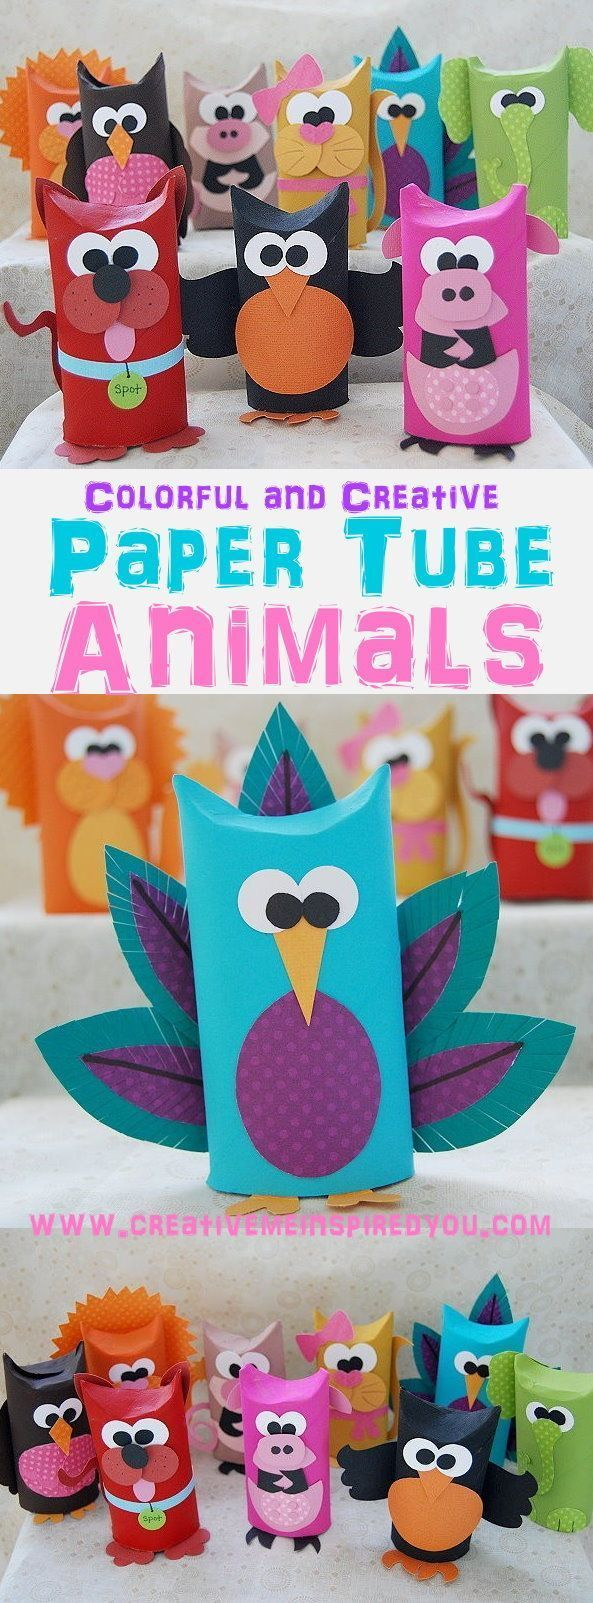 Basteln mit Klopapierrollen - verschiedene bunte Tiere *** Paper Roll Craft for Kids - Look at how darling these animals are, I want to make some with the kids!